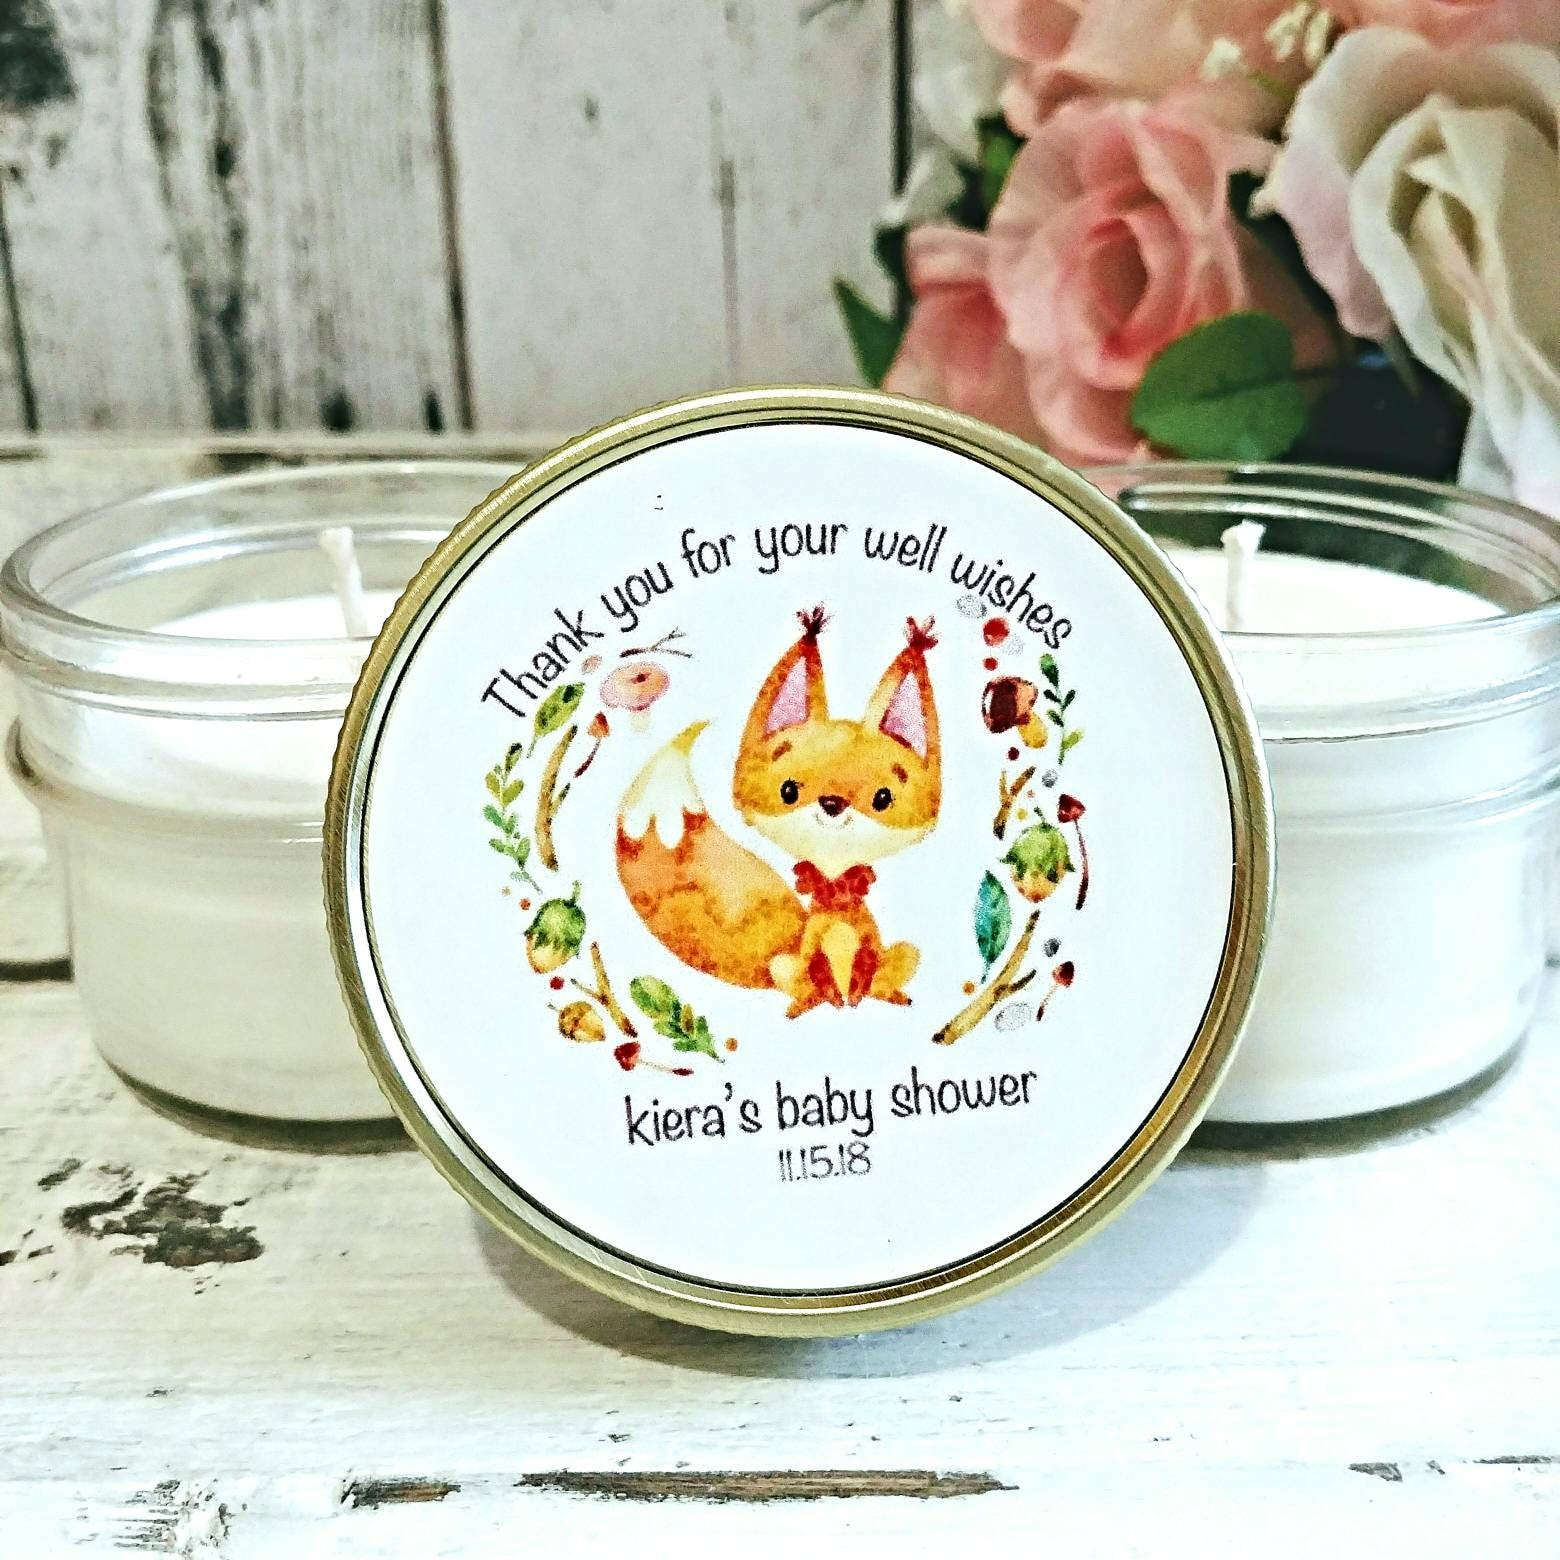 Woodland Baby Shower Favors   Baby Shower Candle Favors   Woodland Favors   Woodland  Baby Shower   Fox Baby Shower   Candle Favors Set Of 12